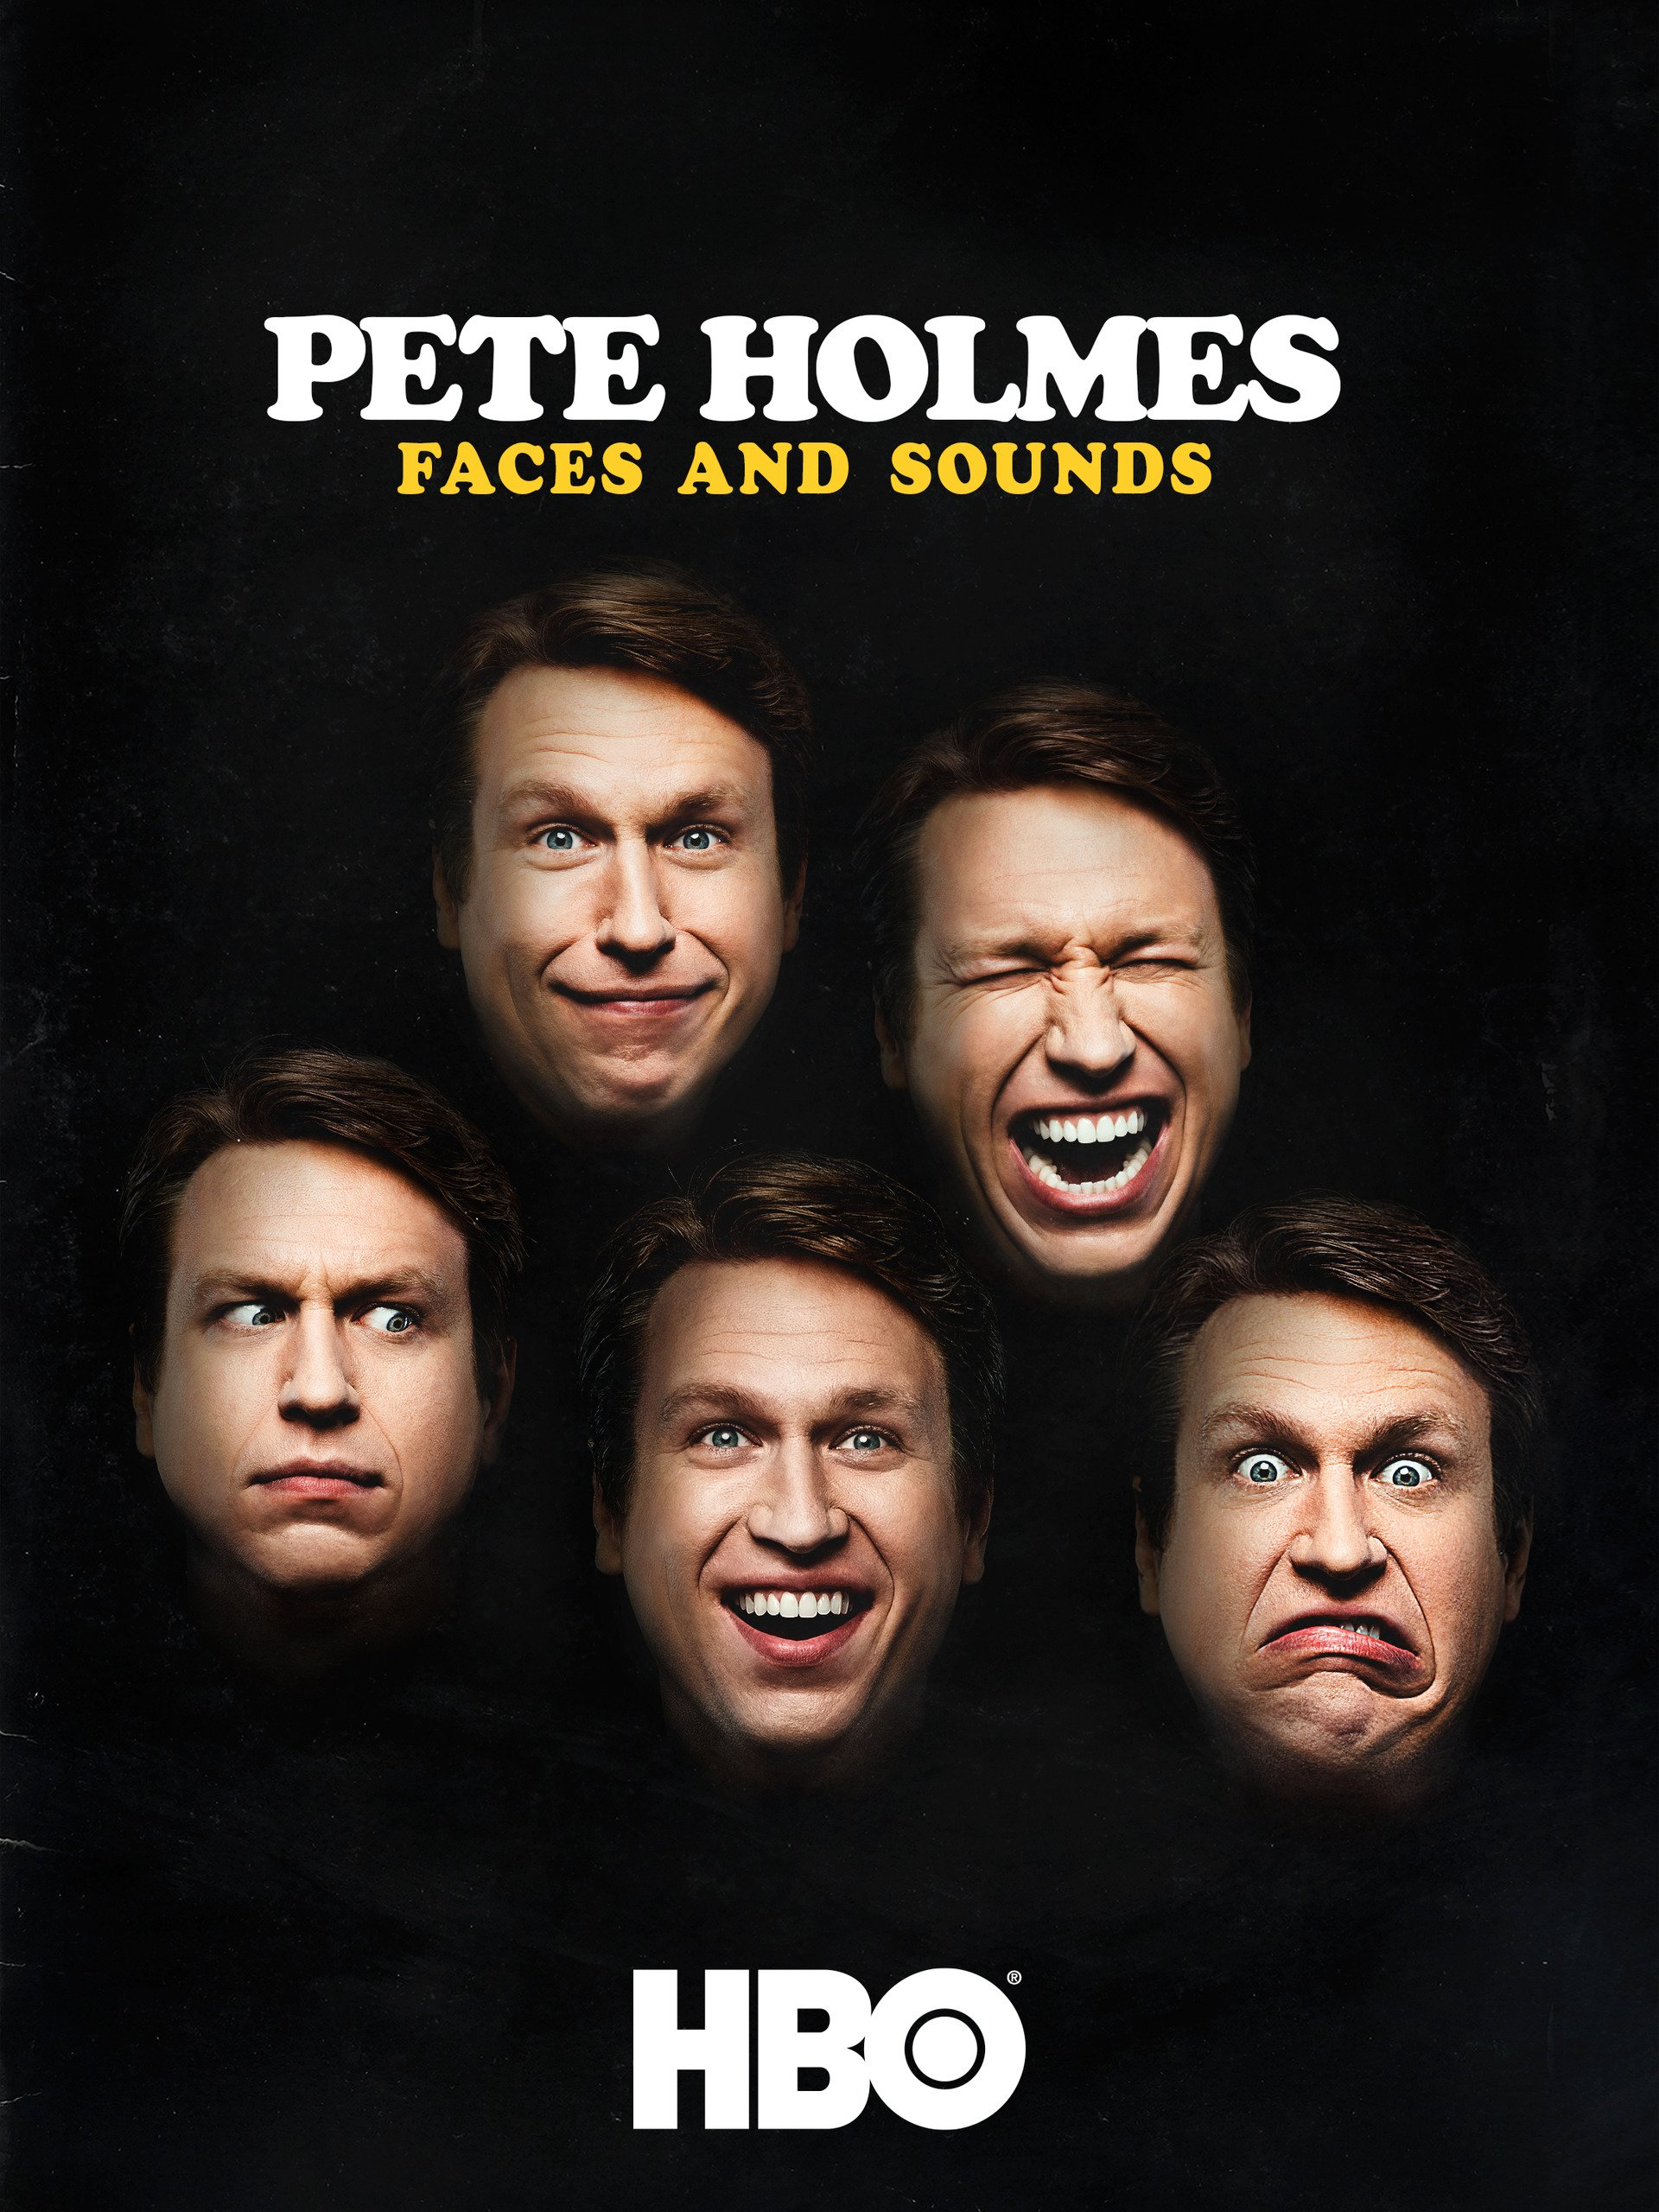 Amazon.com: Pete Holmes: Faces and Sounds: Pete Holmes, Marcus Raboy ...